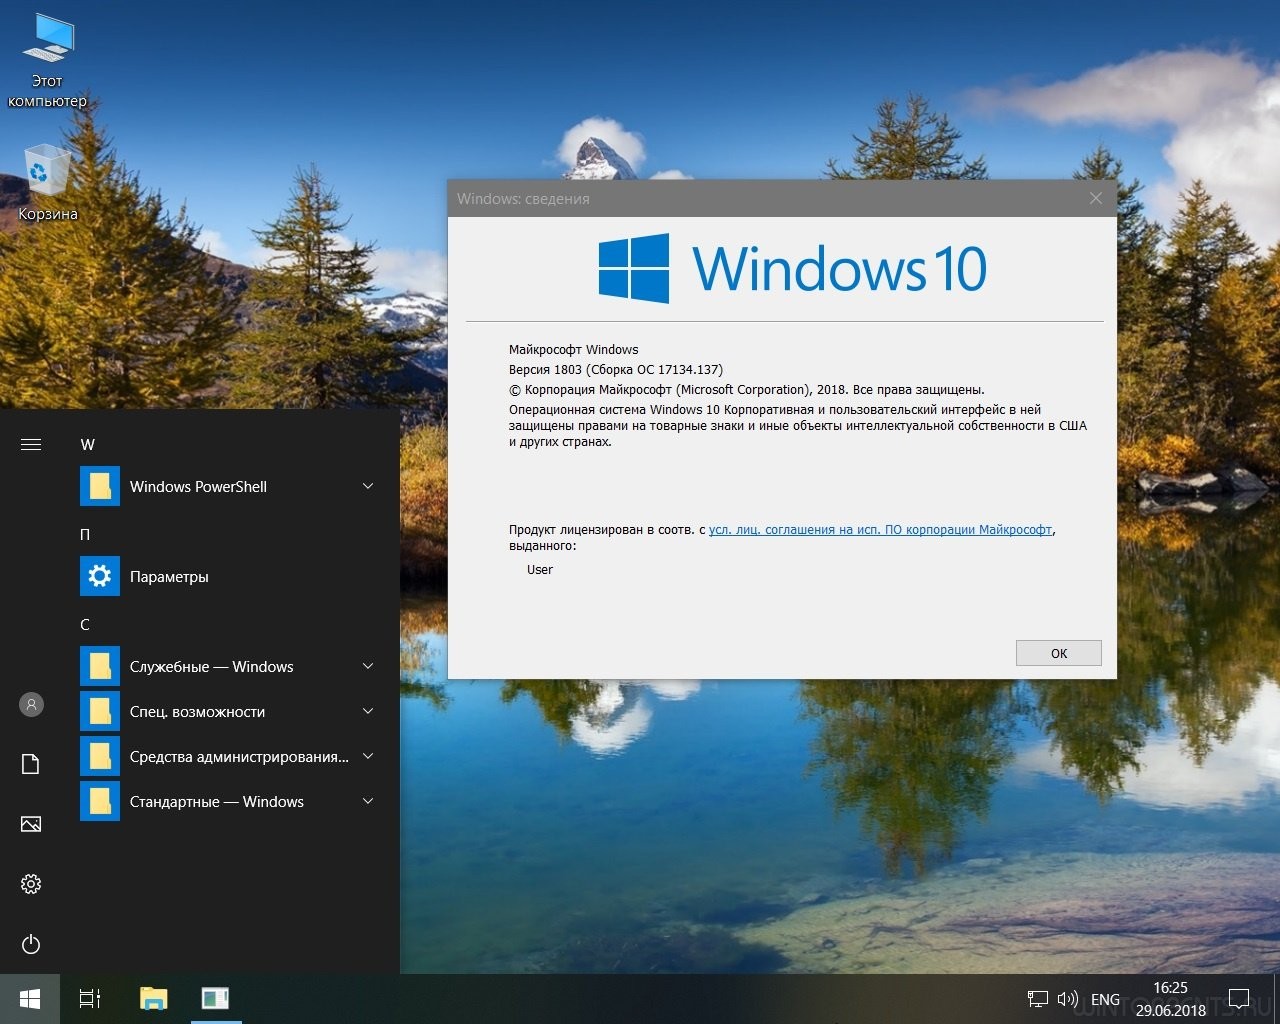 Windows 10 AIO 3in1 (x64) Compact Easy 1803 [17134.137] by flibustier